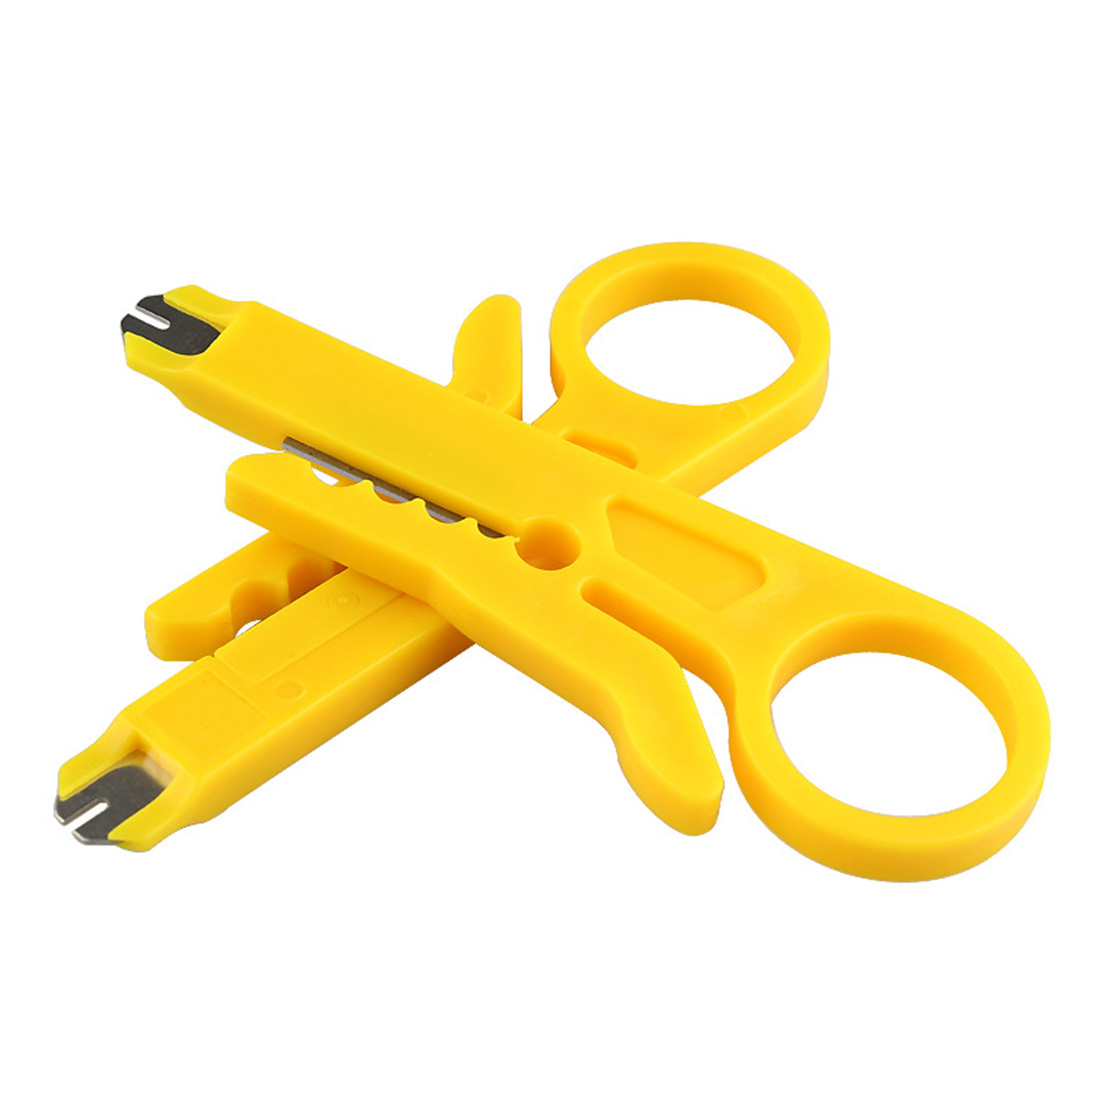 NOYOKERE Mini Strippers Network Cable Plier Yellow UTP STP Cable Cutter Telephone Wire Stripper 5X RJ45